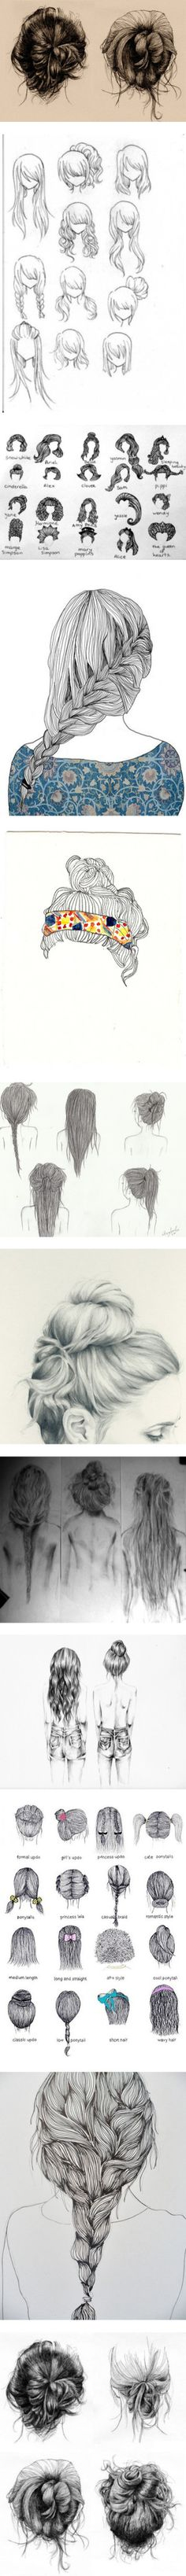 """""""Hair Sketches"""" by glitterfierce ❤ liked on Polyvore"""